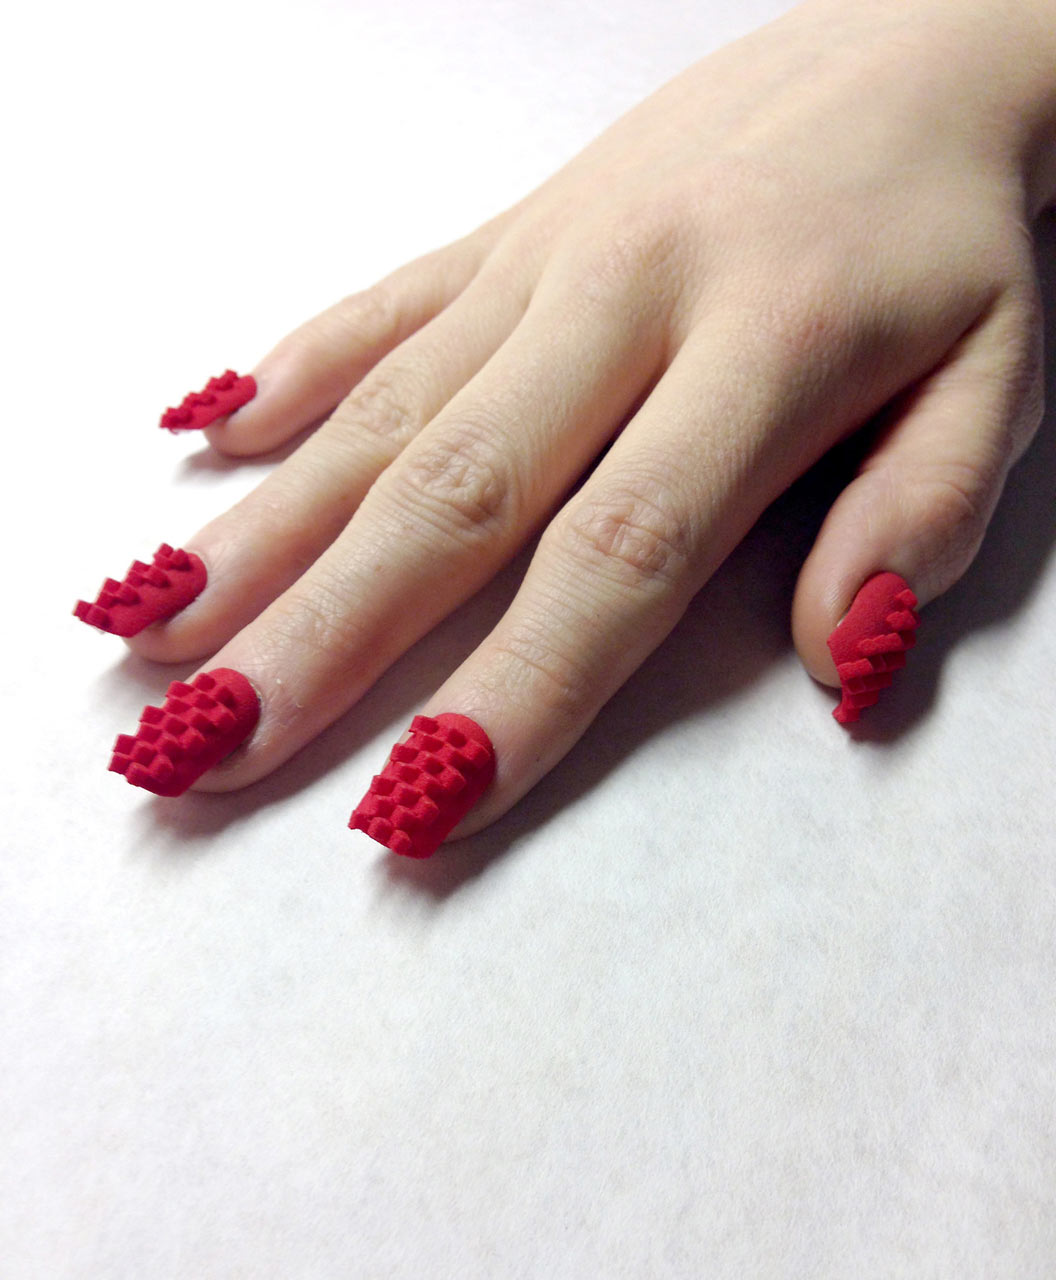 TheLaserGirls-3D-Printed-Nails-3-redhotties